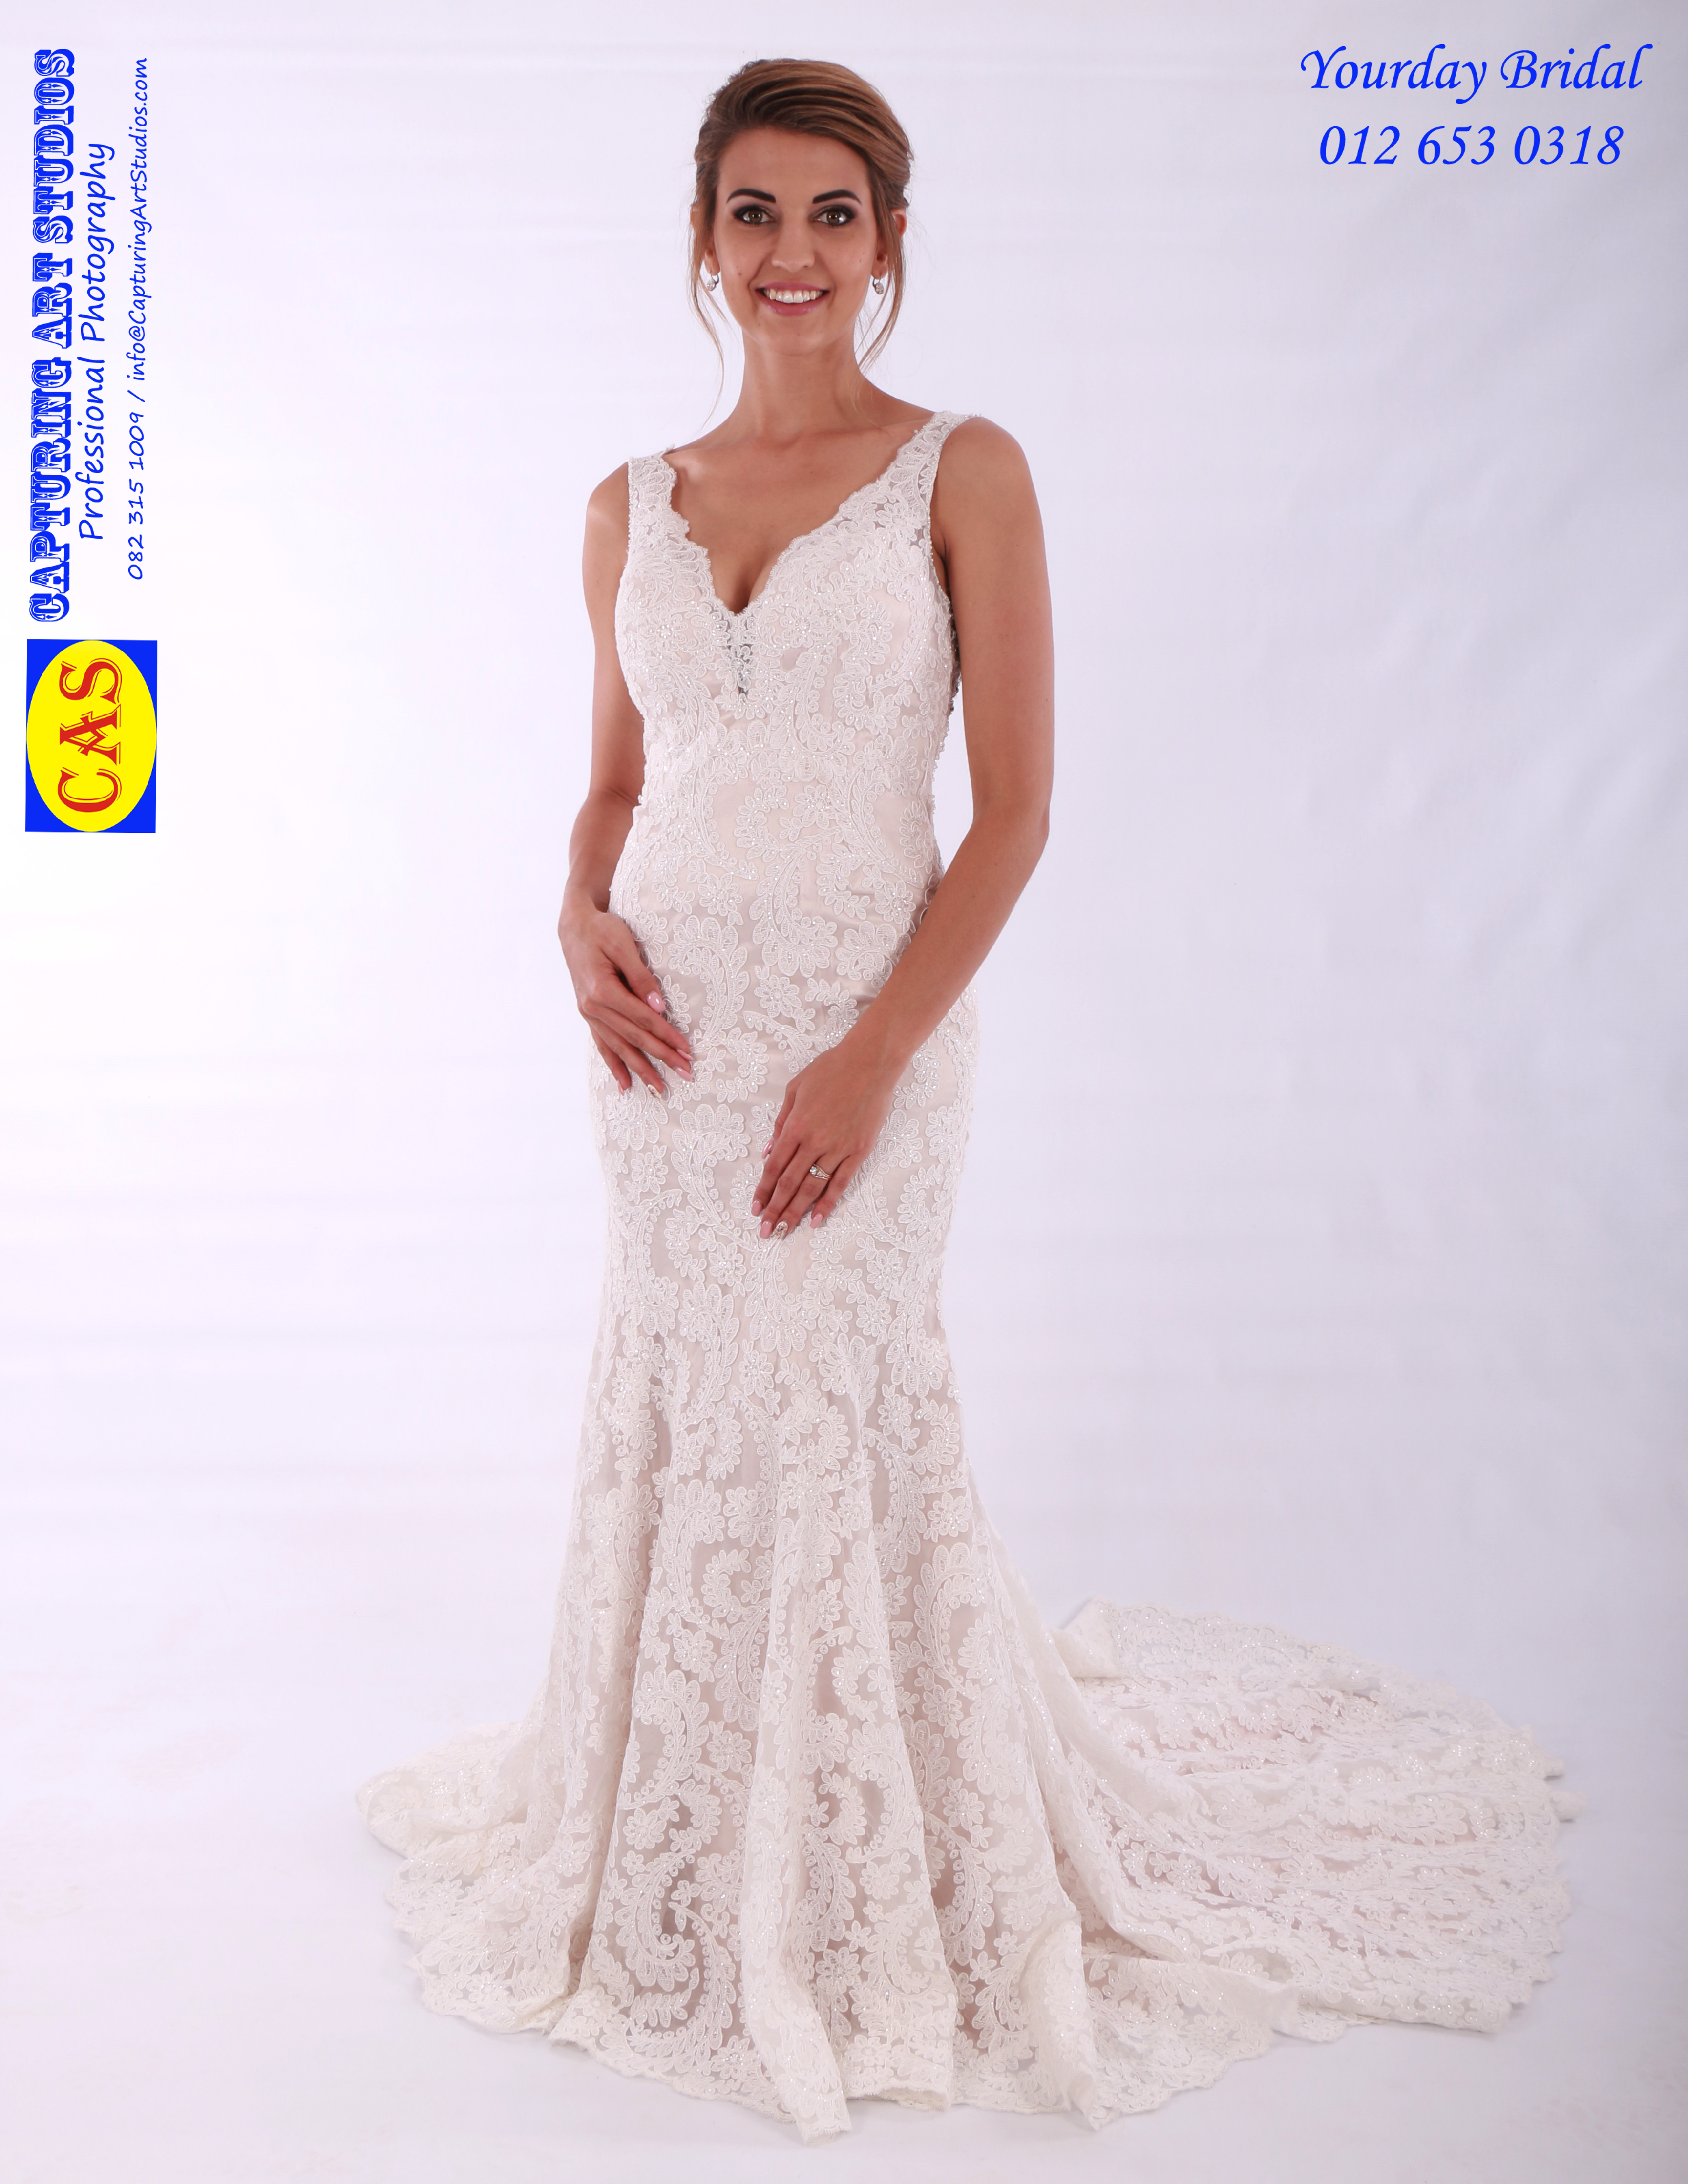 exclusive-wedding-collection-4-f